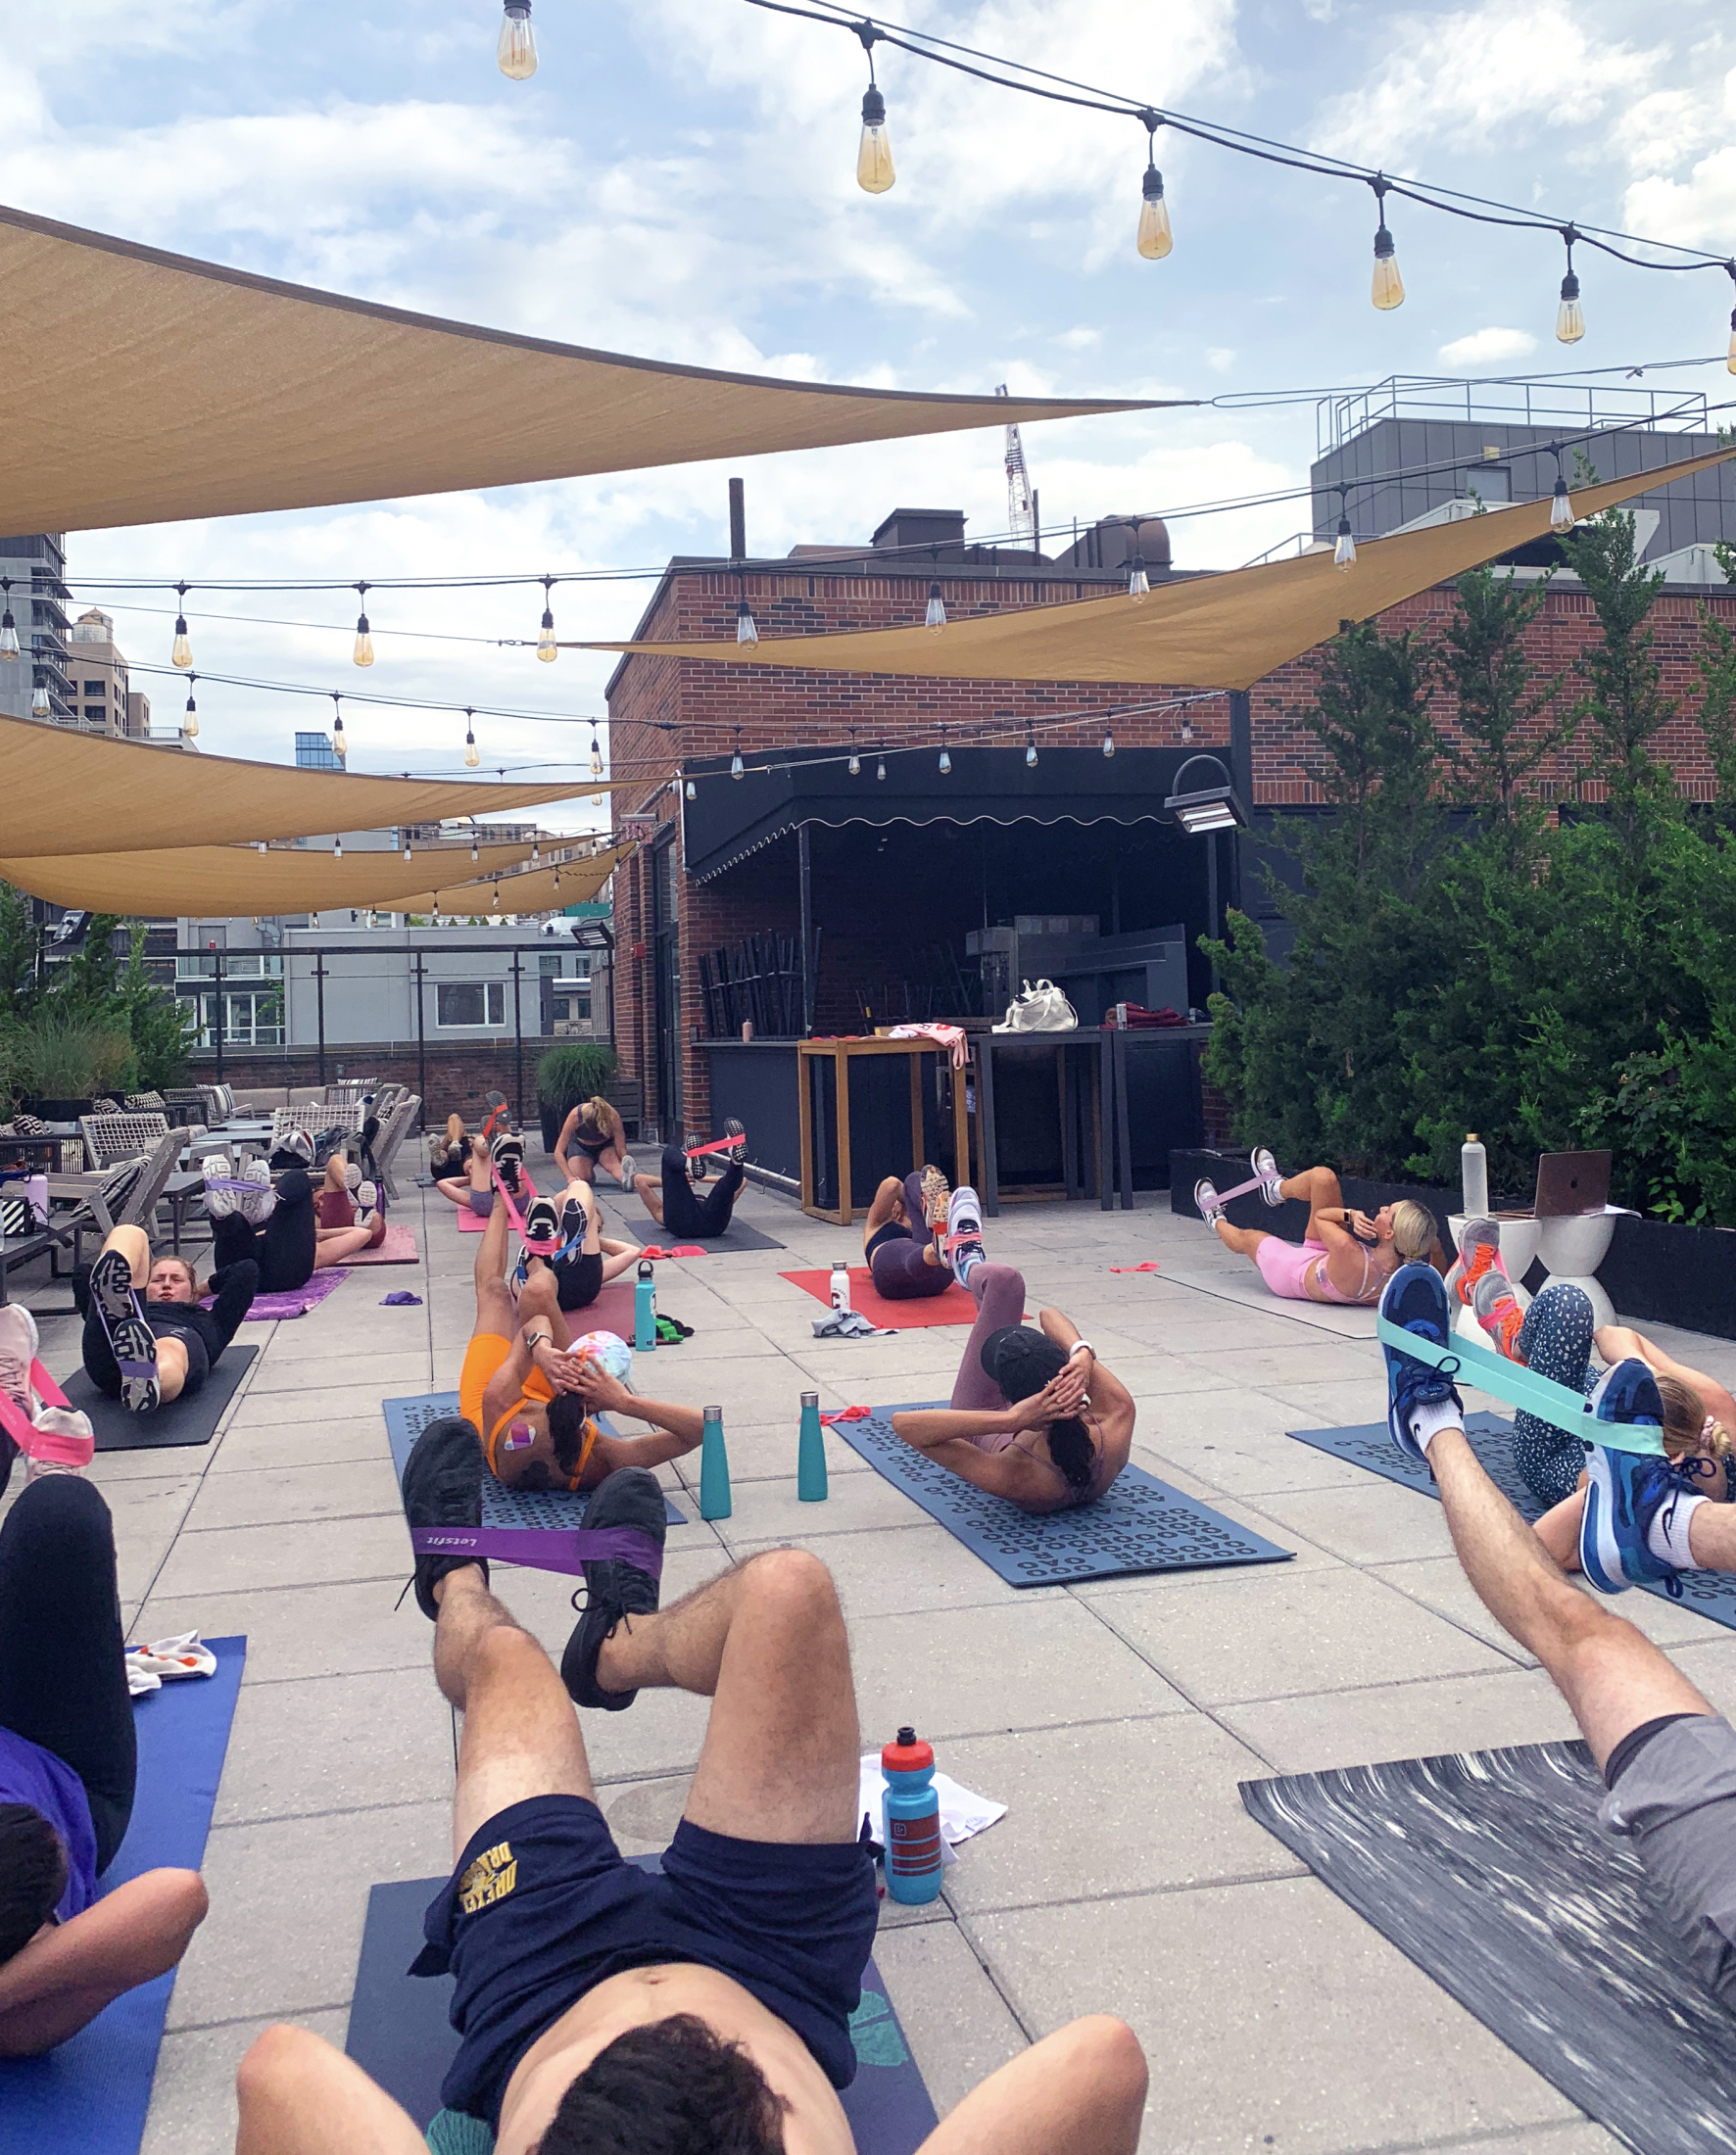 Arlo SoHo rooftop cardio sculpt class with guests on yoga mats lying on their backs working out